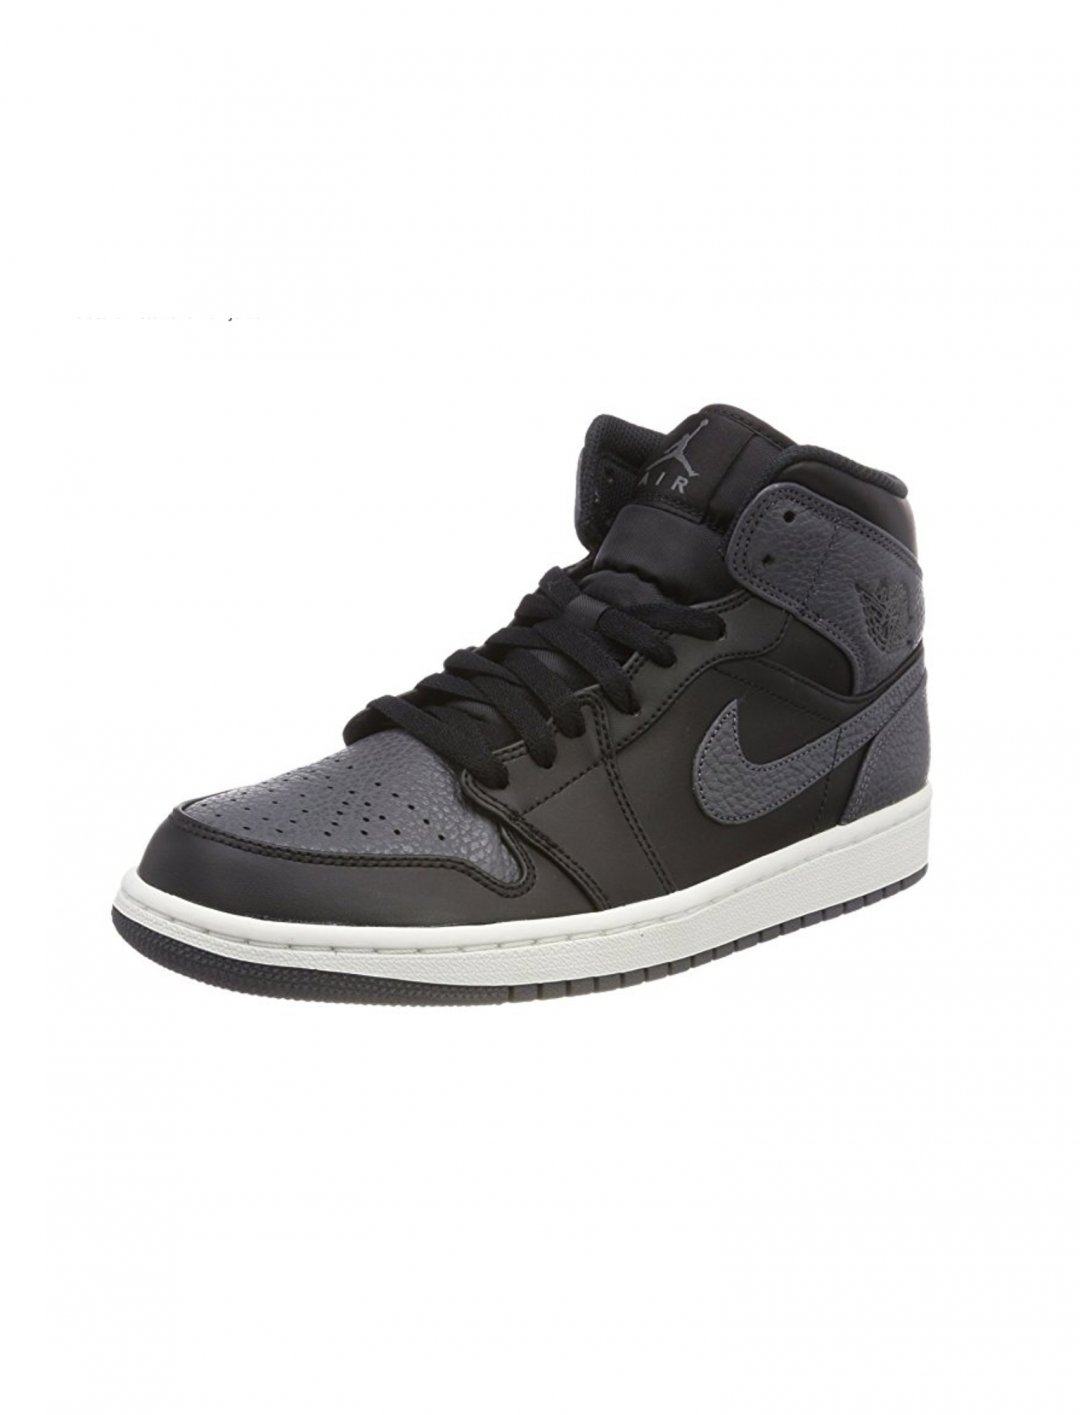 "Air Jordan 1 Mid Basketball Shoes {""id"":12,""product_section_id"":1,""name"":""Shoes"",""order"":12} Nike"